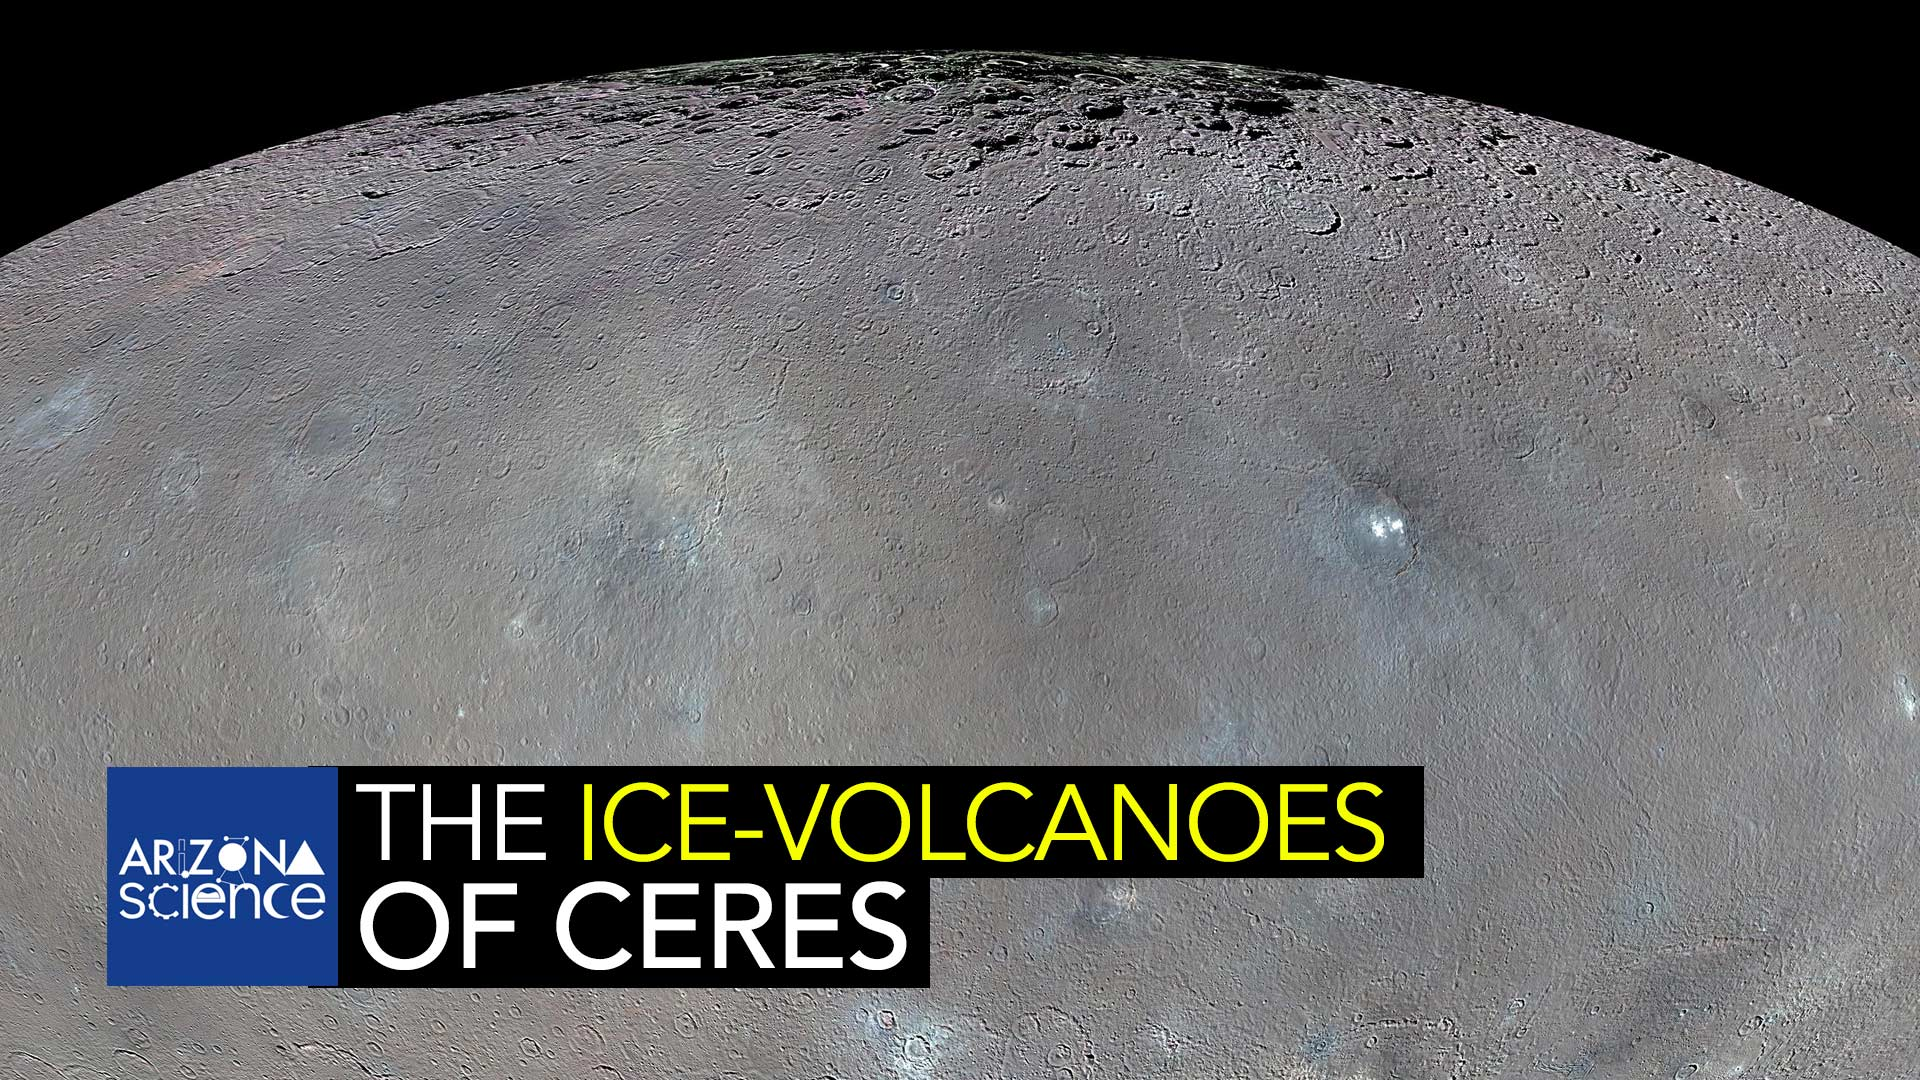 This global map shows the surface of Ceres in enhanced color, encompassing infrared wavelengths beyond human visual range. Images taken using infrared (965 nanometers), green (555 nanometers) and blue (438 nanometers) spectral filters were combined to create this view.